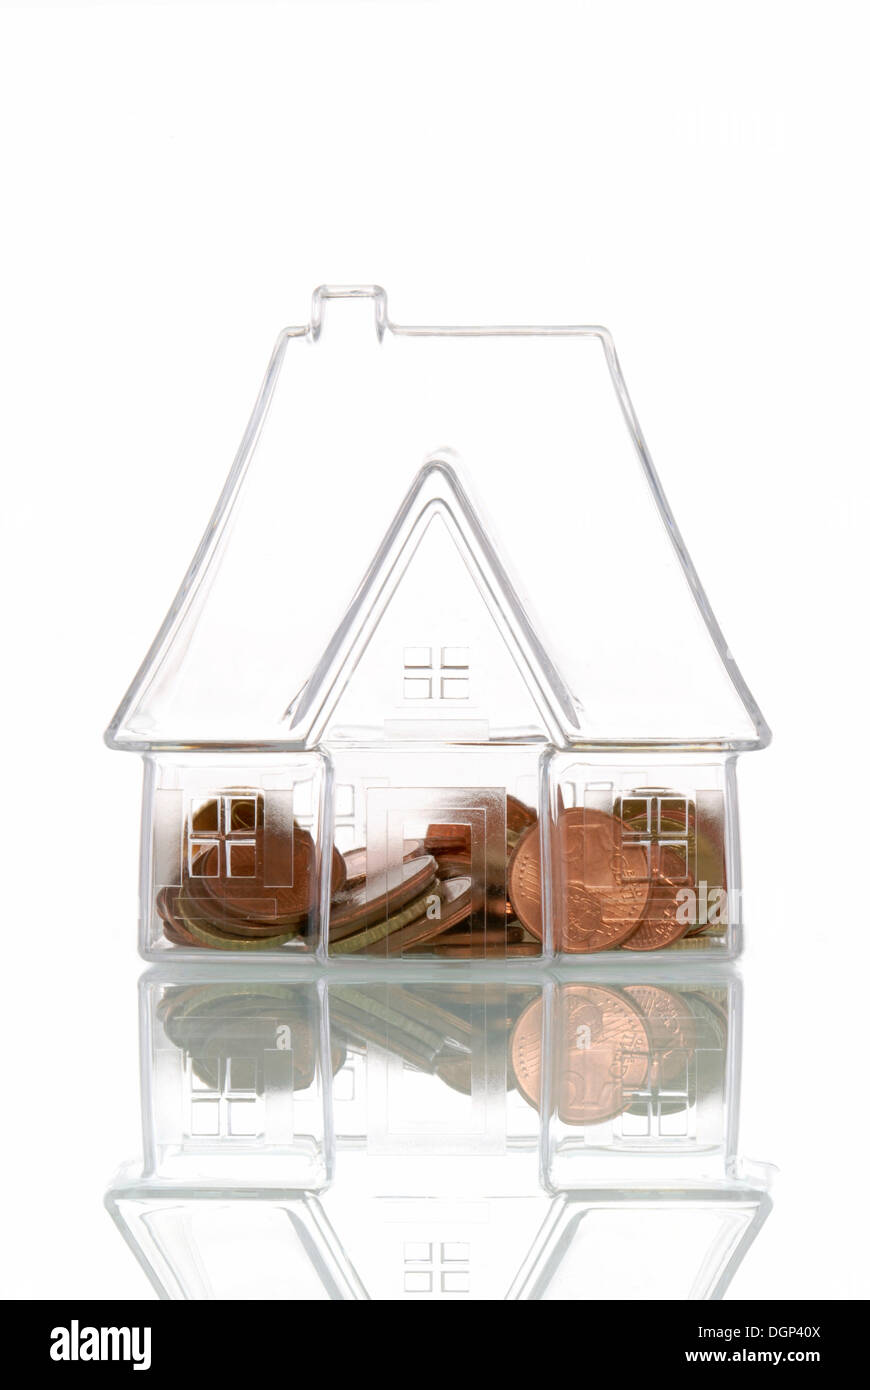 Transparent house with coins, symbolic image for transparency in the real estate market, house building costs - Stock Image